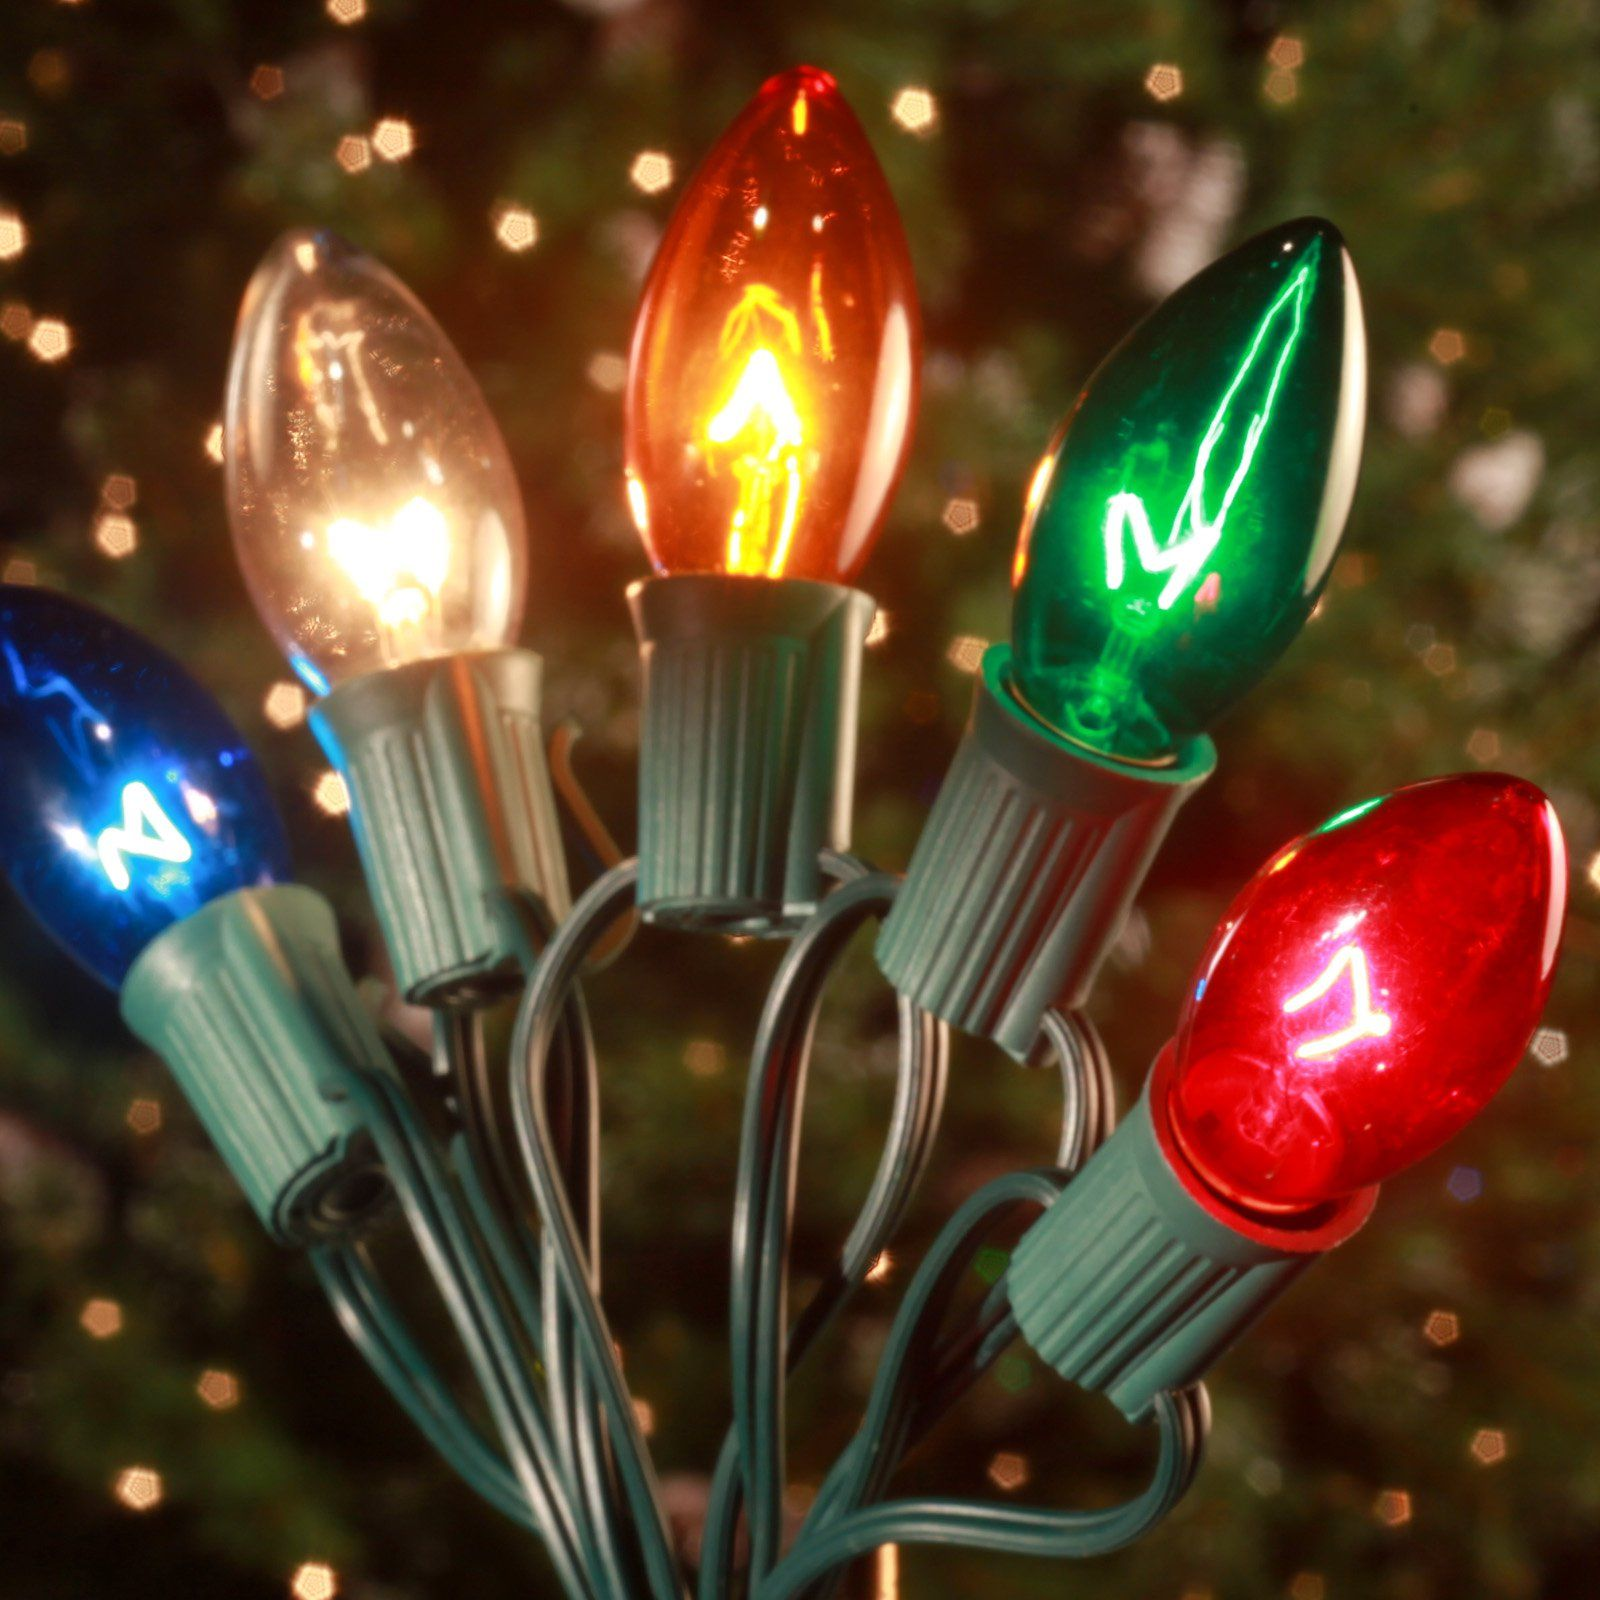 Brite Ideas 25 Bulb C9 Incandescent Transparent Light Set Multi Color Hanging Christmas Lights Multi Colored Christmas Lights Christmas Lights